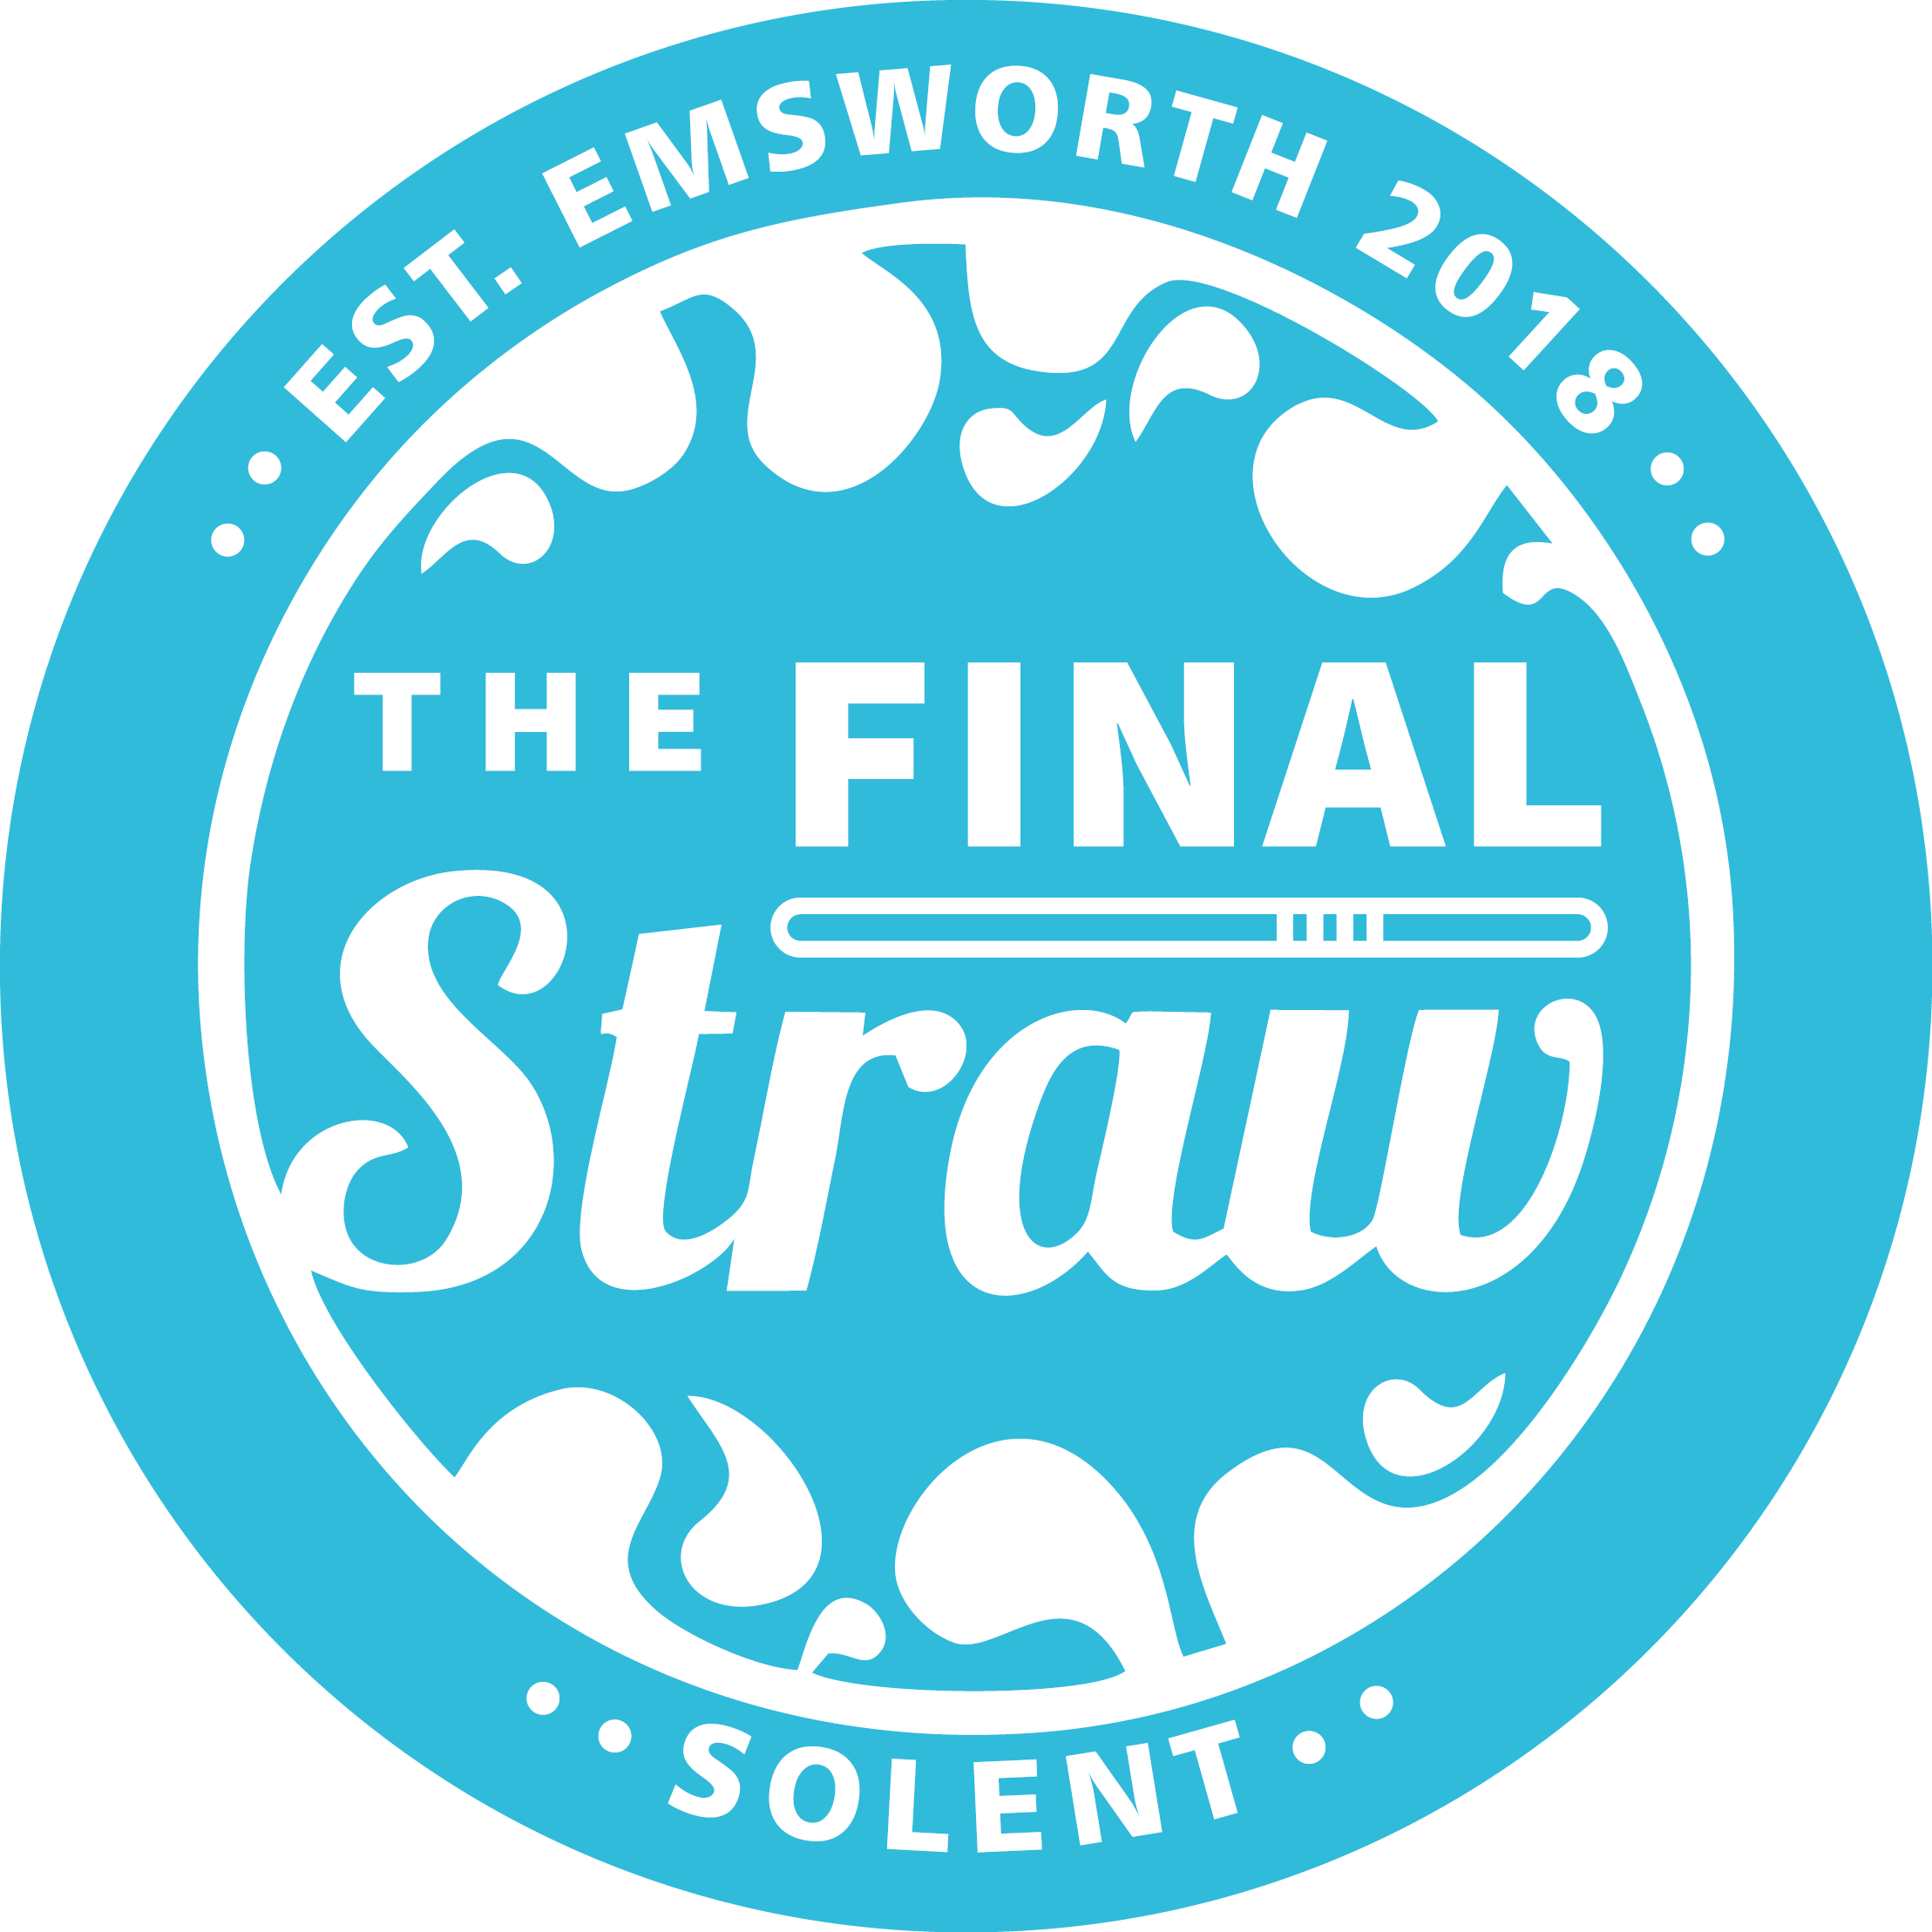 FINAL STRAW Solent logo March 2018 transparent background.png